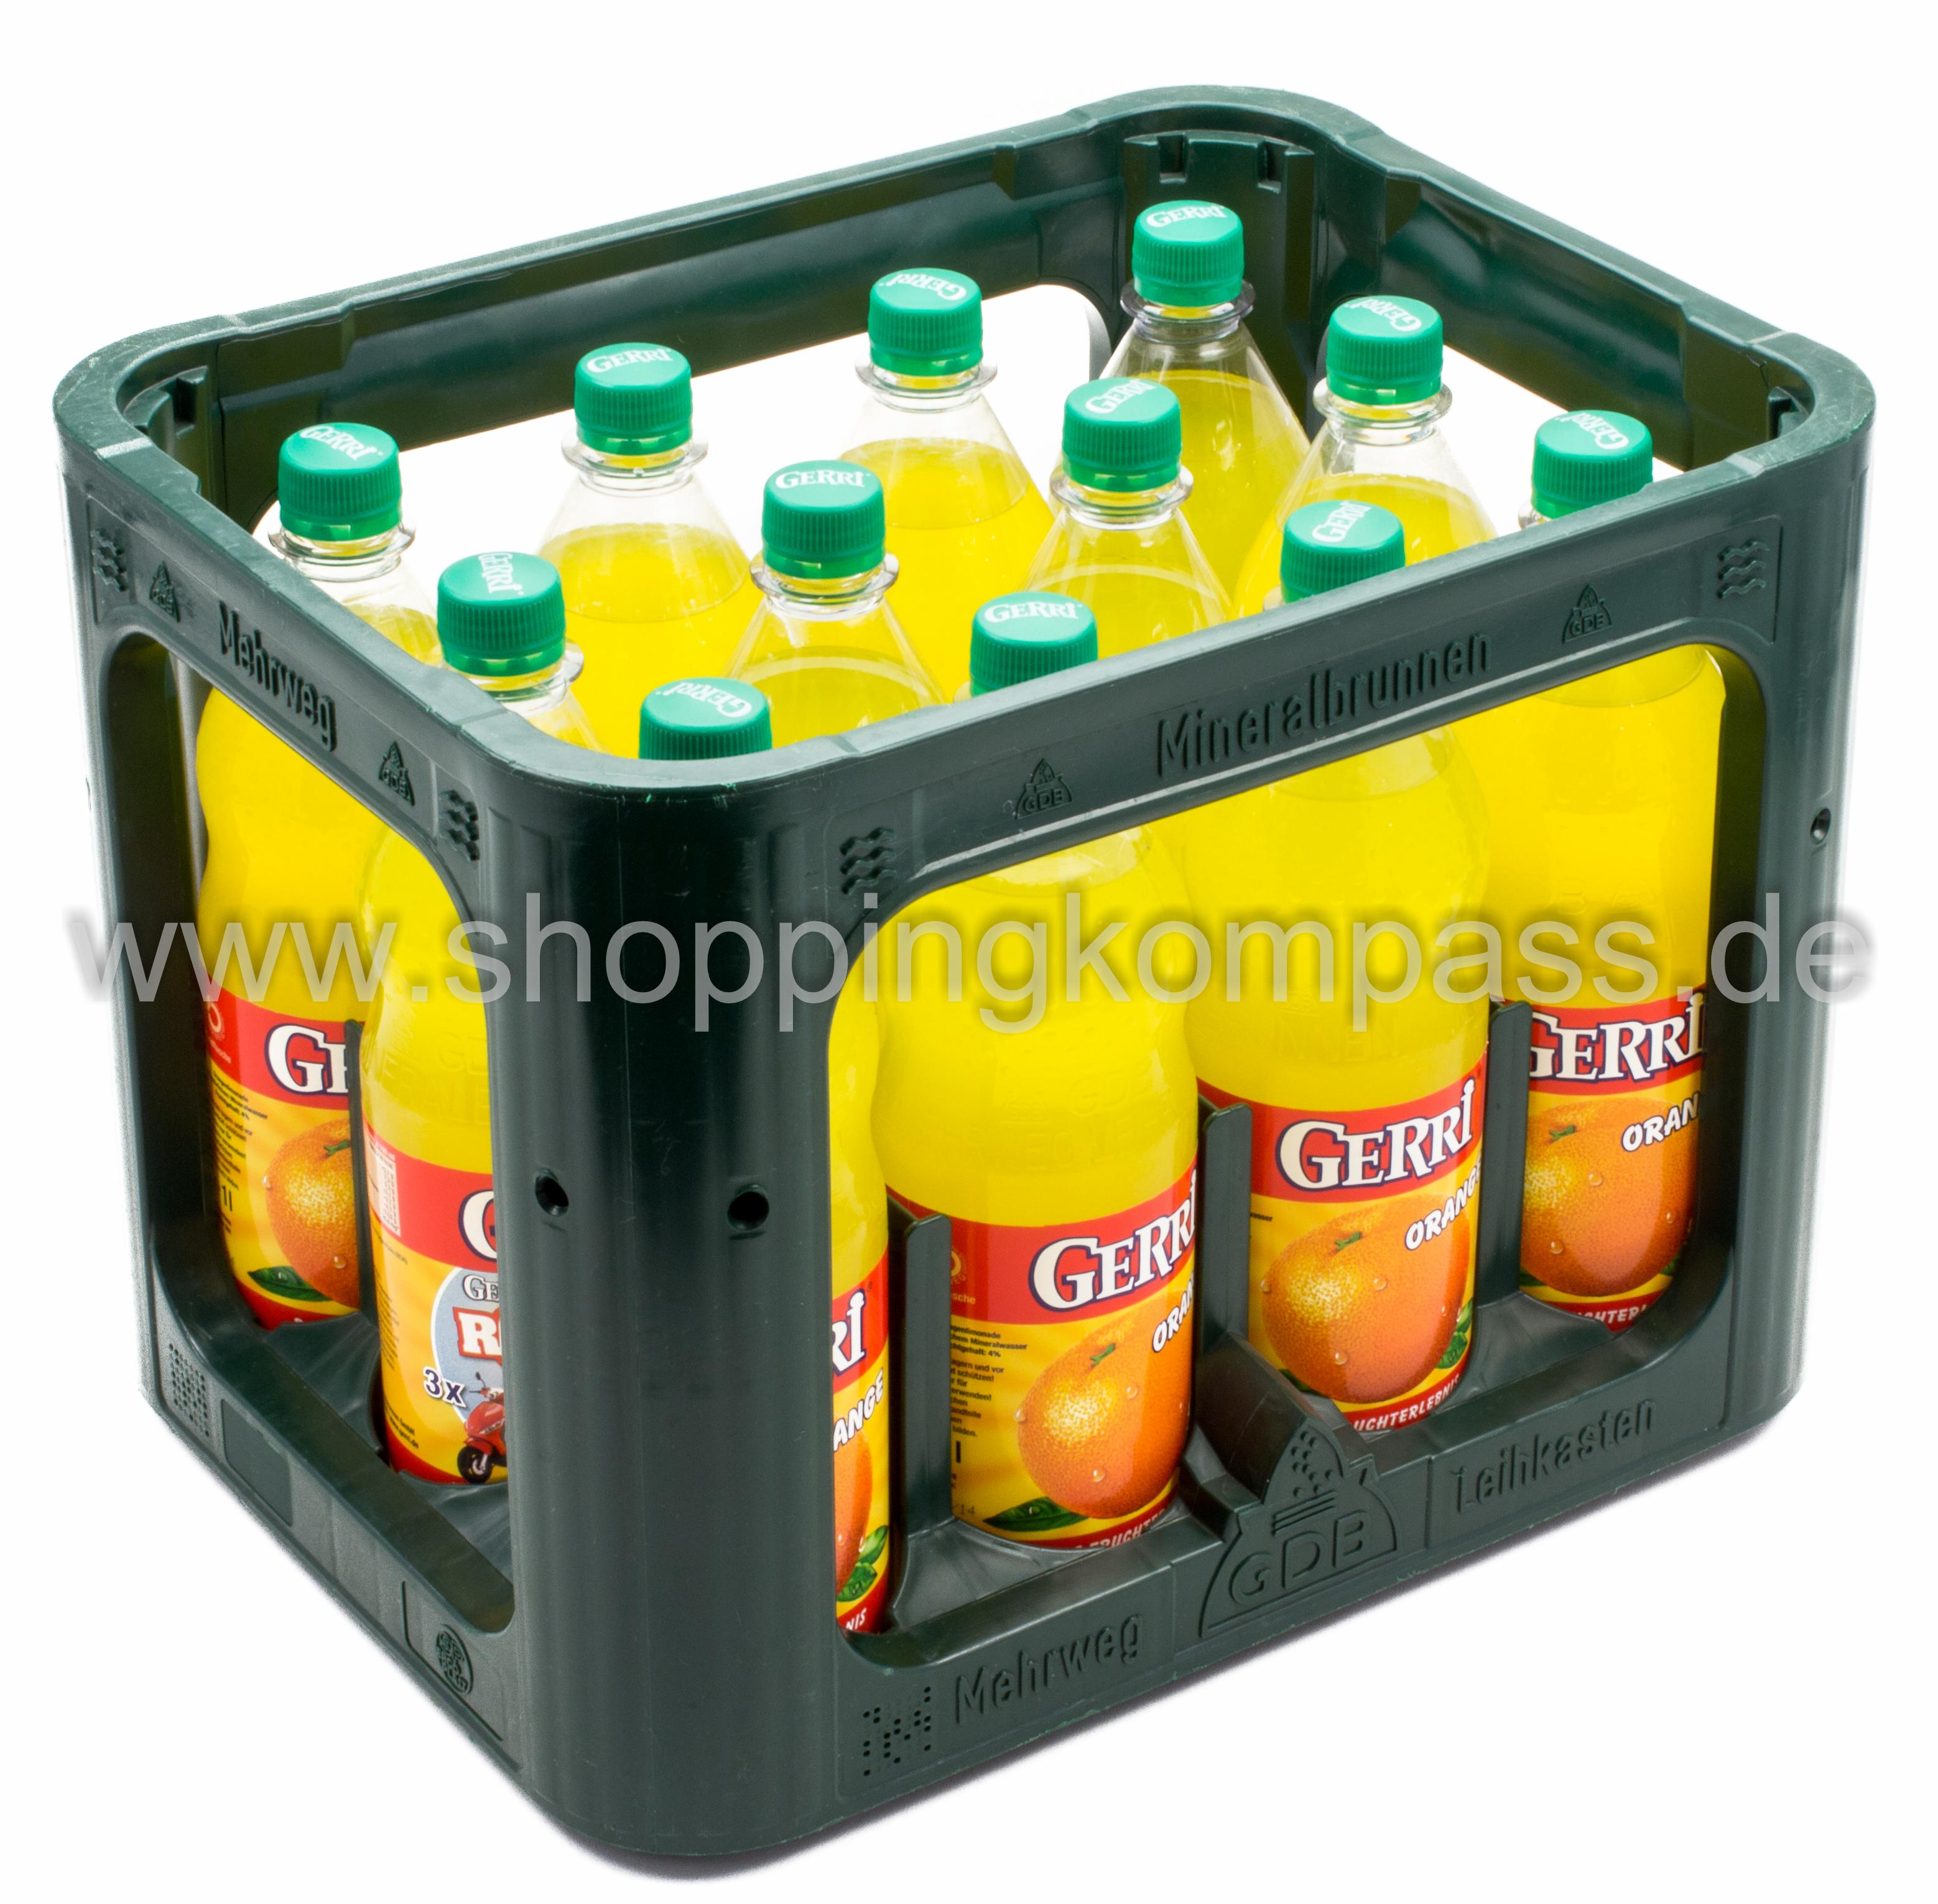 Gerri Orange Kasten 12 x 1 l PET Mehrweg